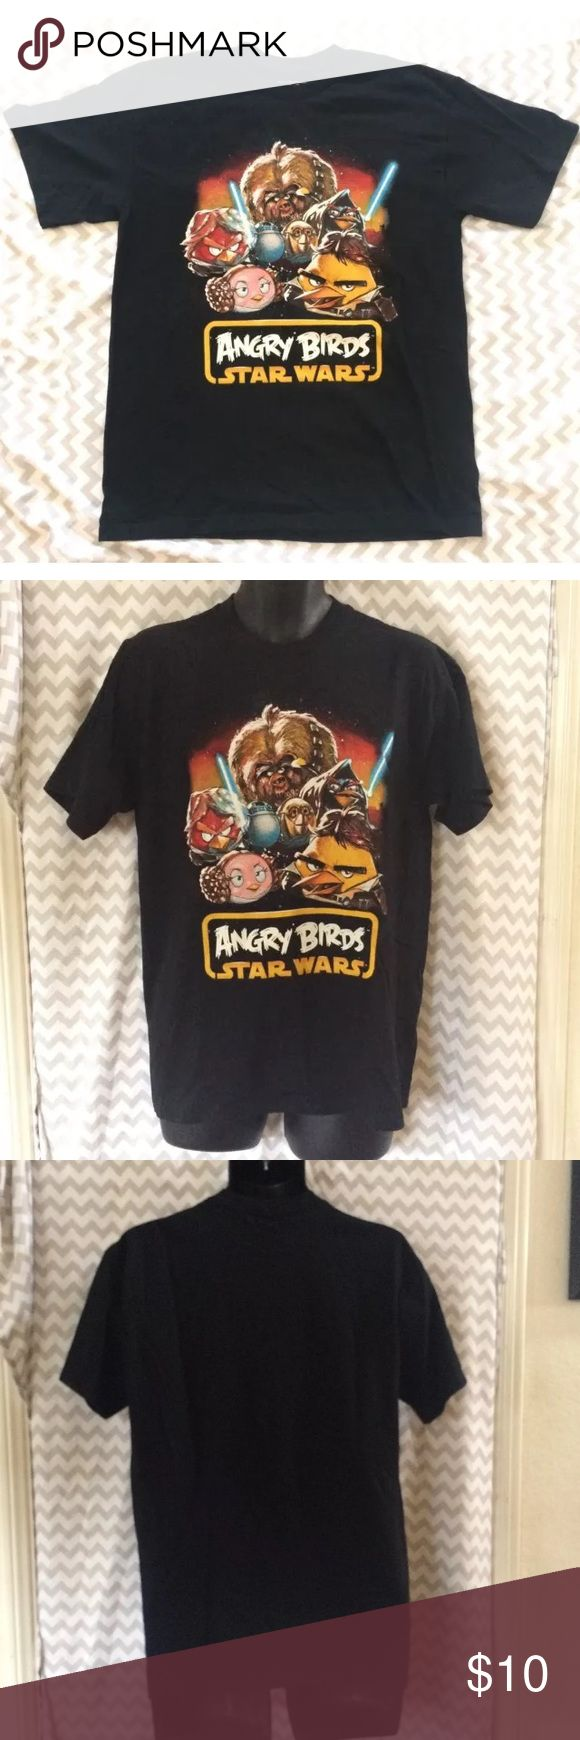 Star Wars Angry Birds T-Shirt Adult Size Medium Angry Birds: Star Wars edition graphic t-shirt by Fifth Sun, unisex adult size medium. Black with graphic design depicting the main characters from Star Wars as the popular Angry Birds. The shirt is in very gently used condition, with no stains or rips.  Measurements- Chest: 19 in. Length: 28 in. Sleeves: 7.5 in. Shoulders: 19 in. Fifth Sun Shirts Tees - Short Sleeve